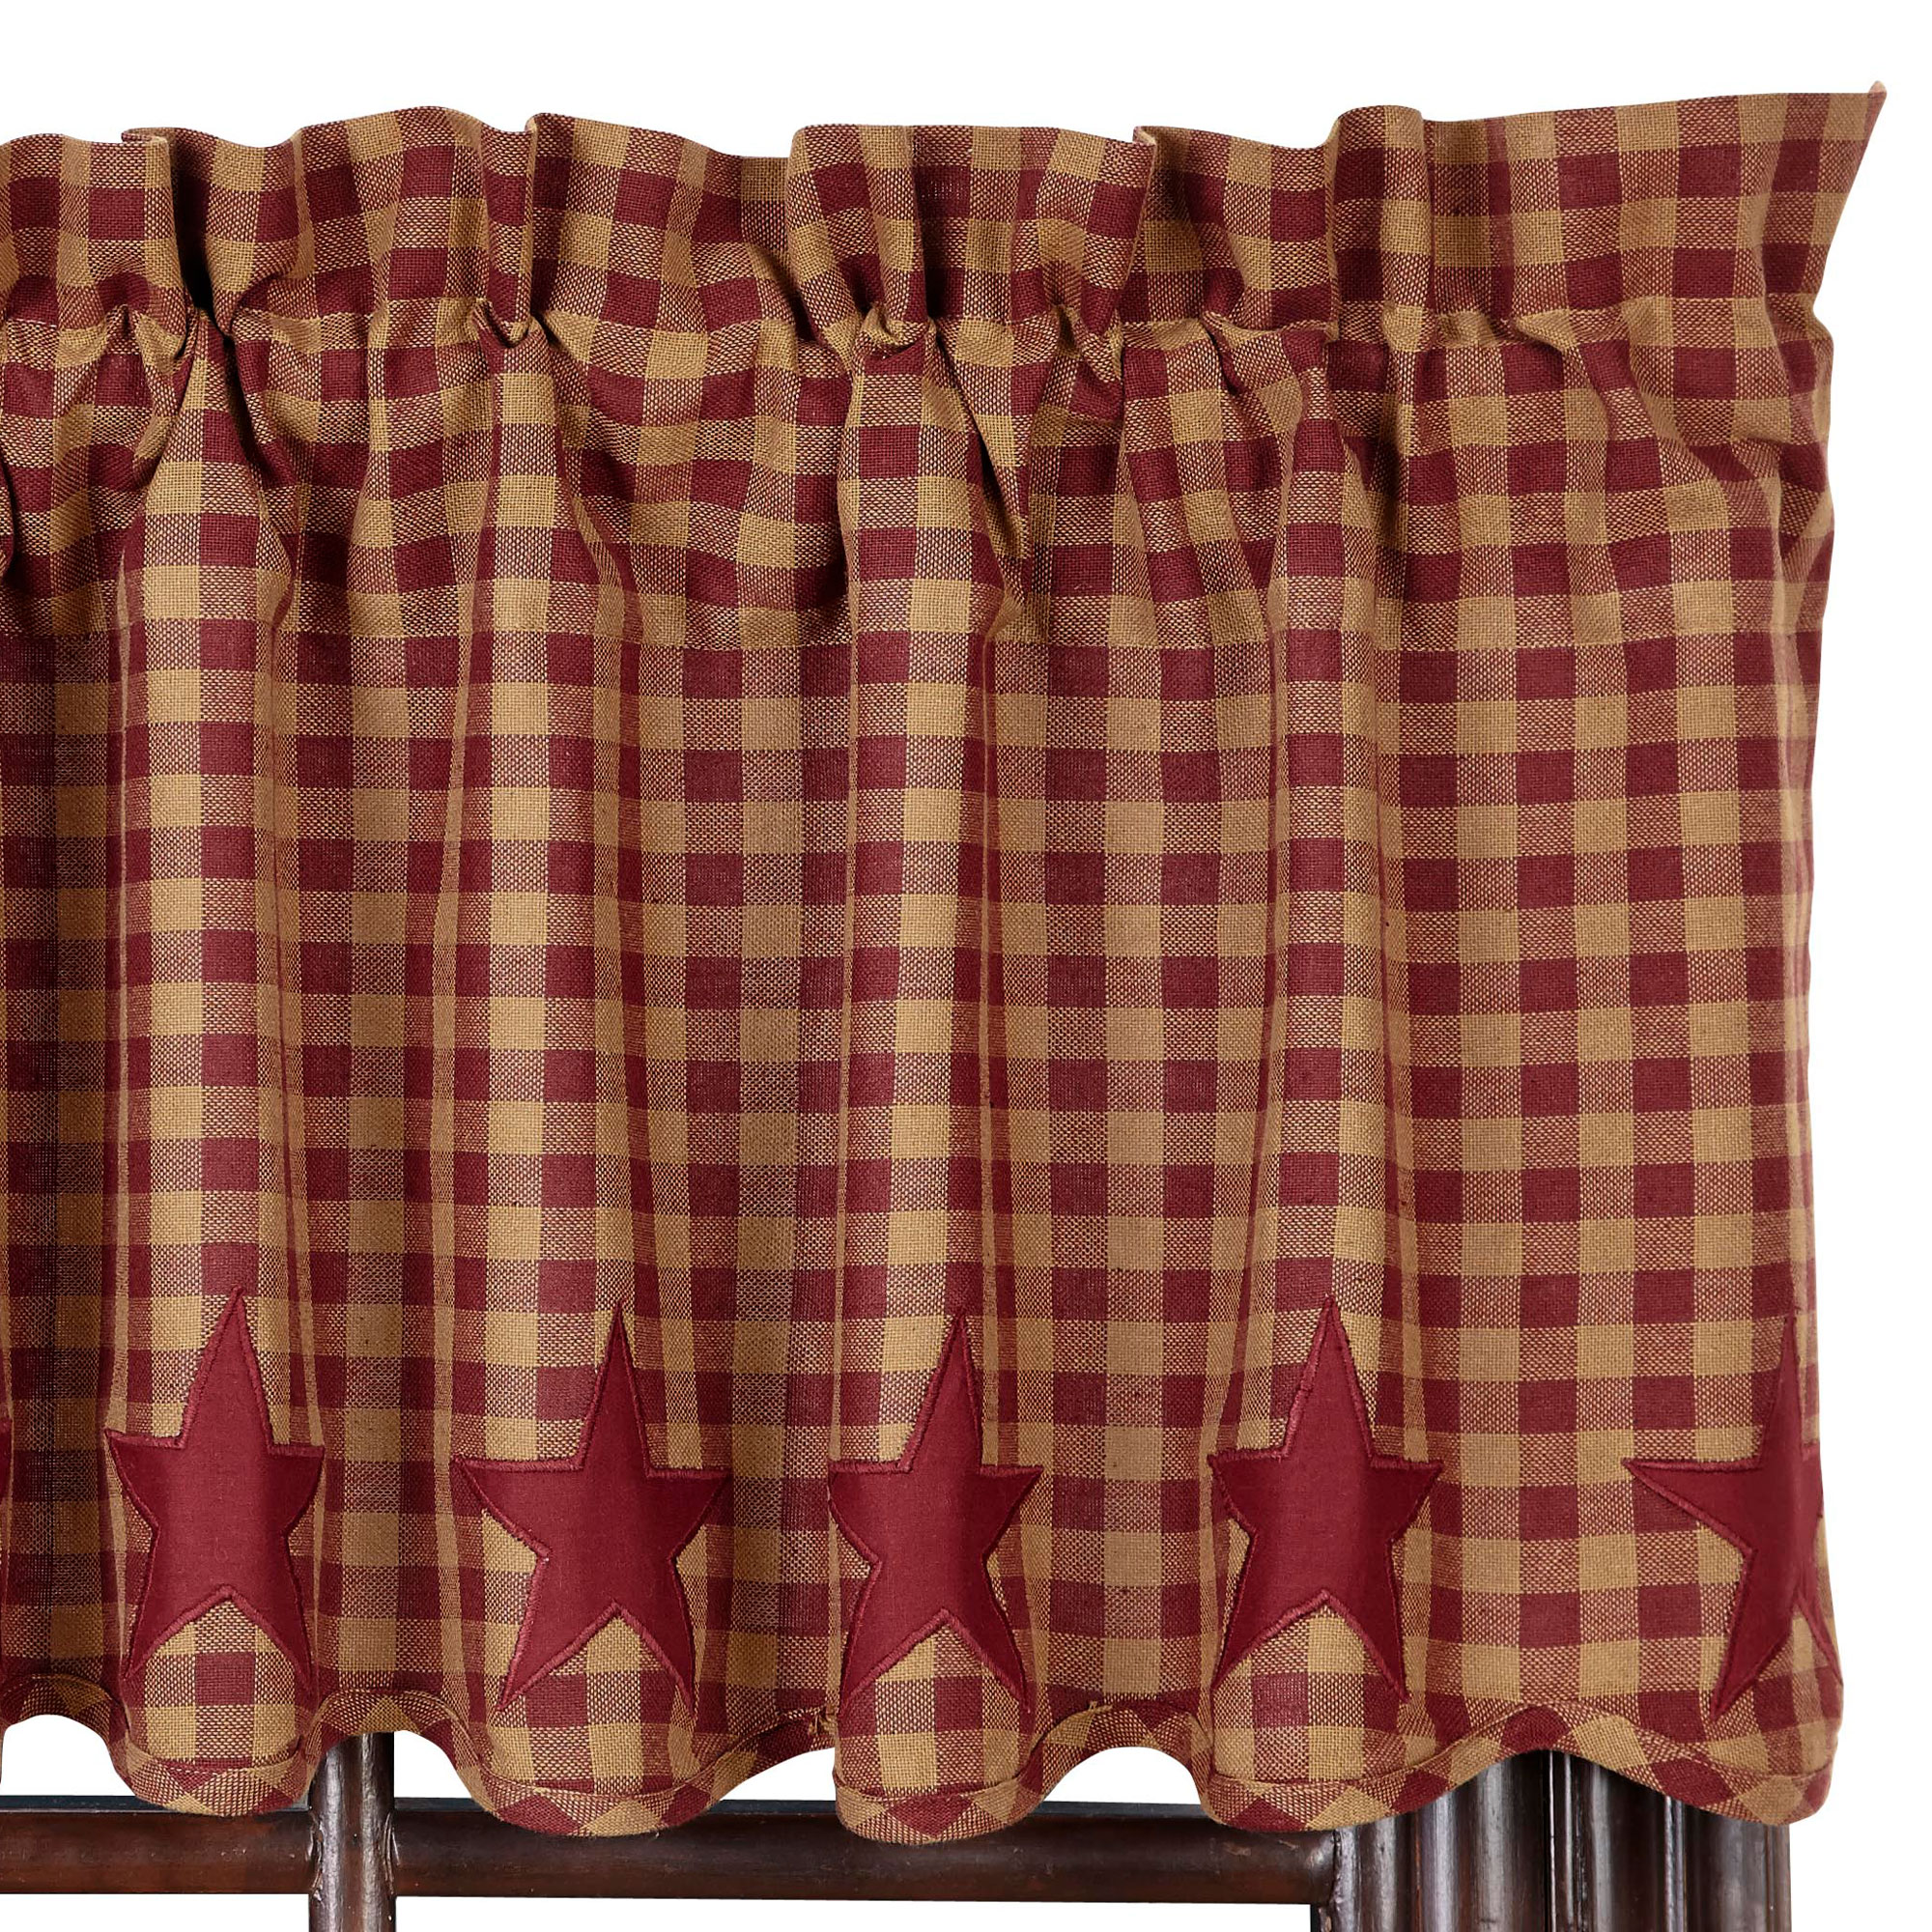 panels decor valances for items wayfair country valance online home curtain french sale wholesale and stores curtains